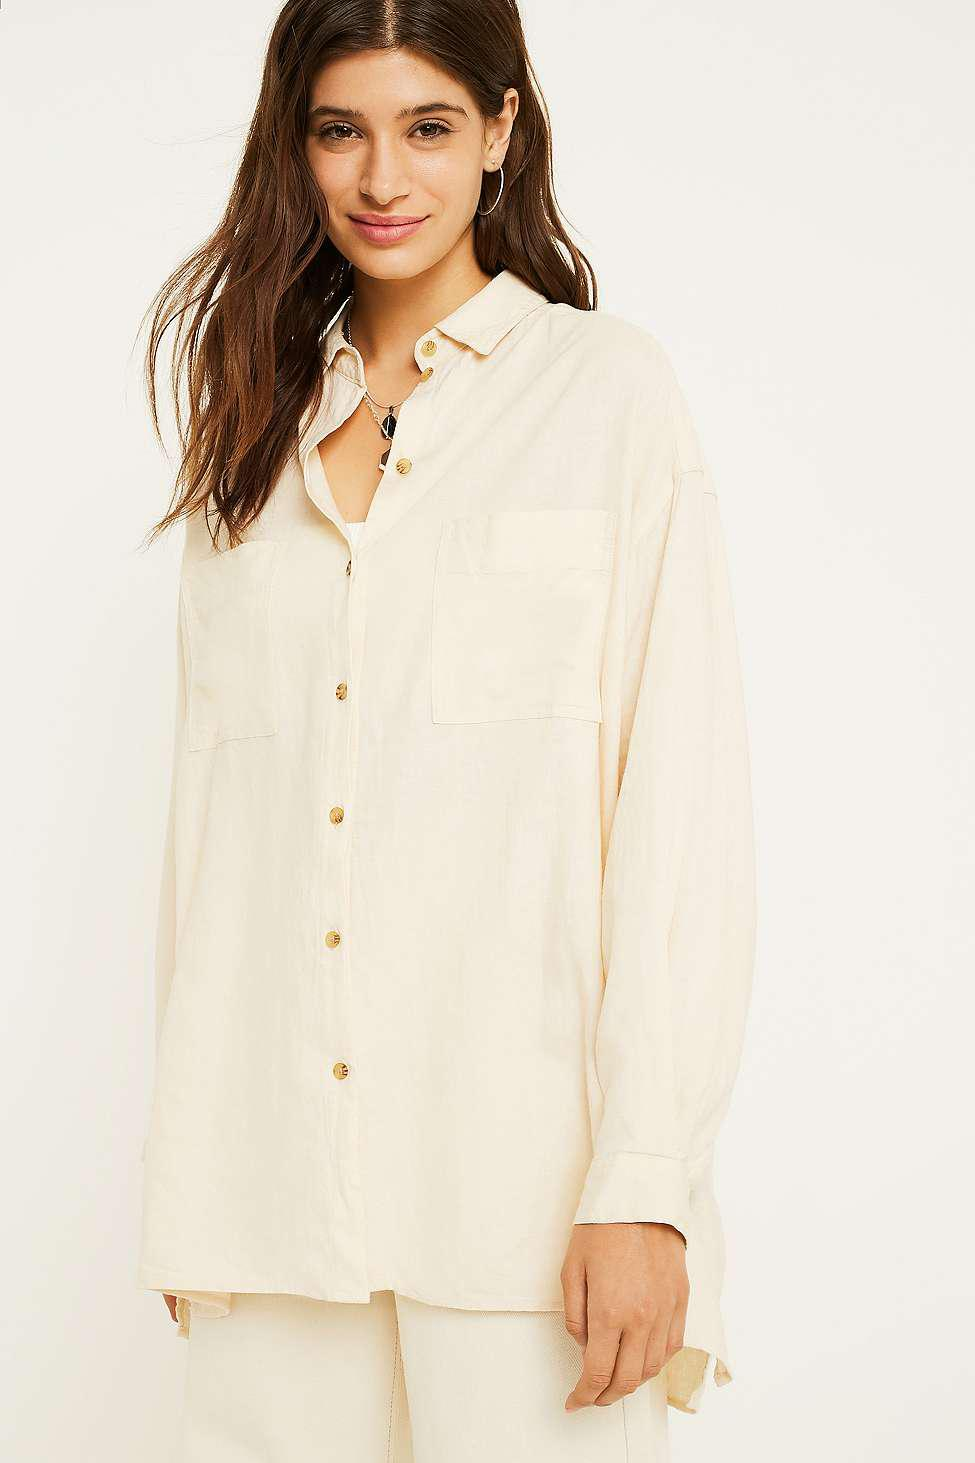 Urban Outfitters Uo Oversized Linen Shirt - Womens L in White